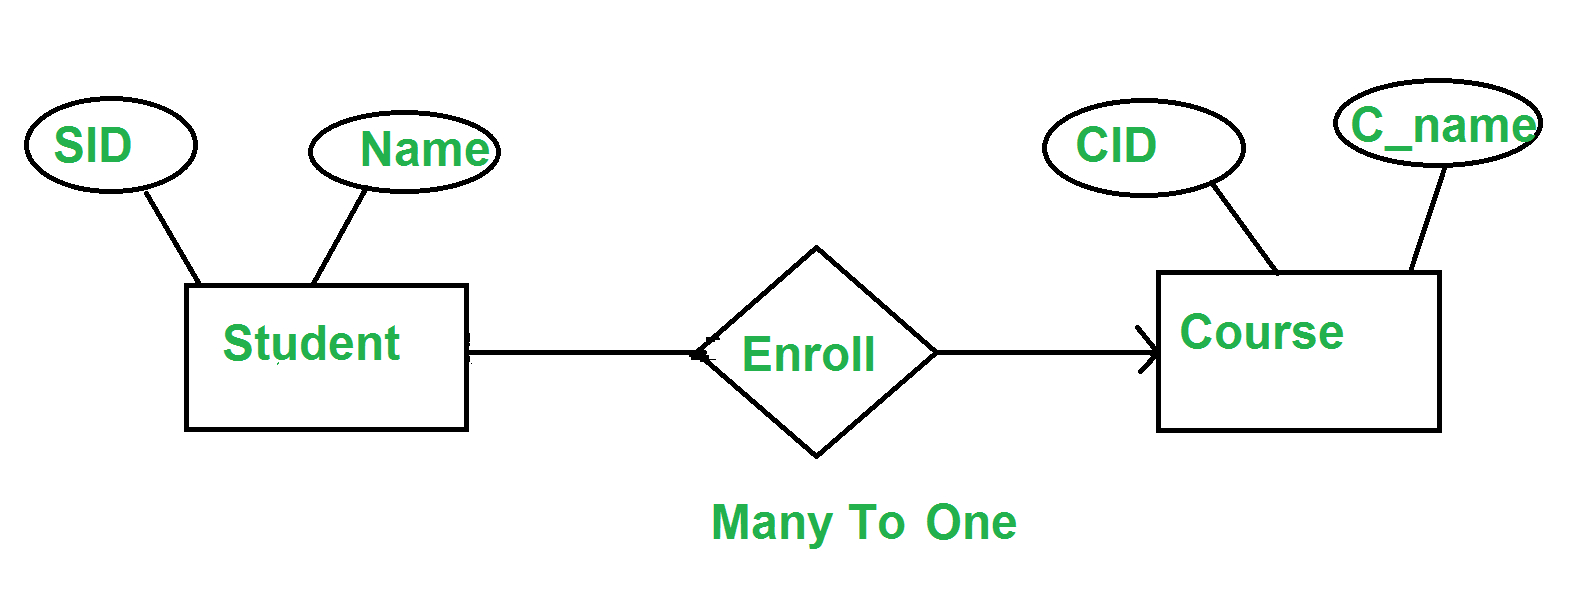 Minimization Of Er Diagrams - Geeksforgeeks intended for Er Diagram One To Many